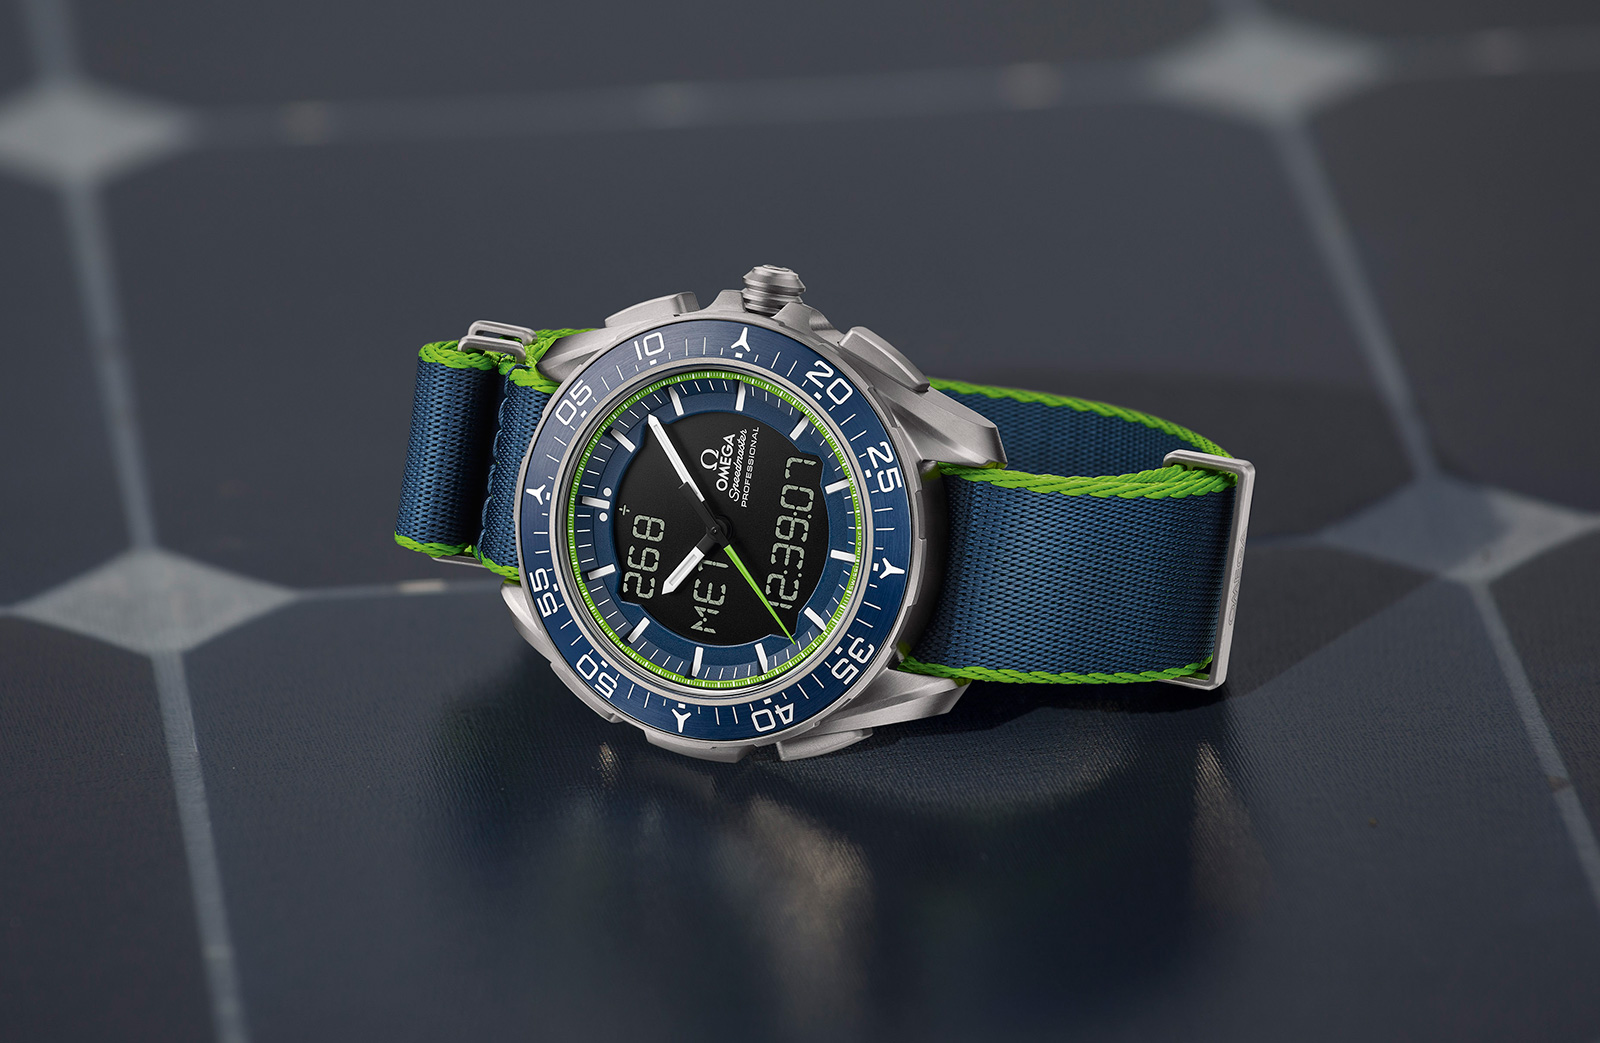 Omega-Speedmaster-Skywalker-X-33-Solar-impulse-limited-edition-6